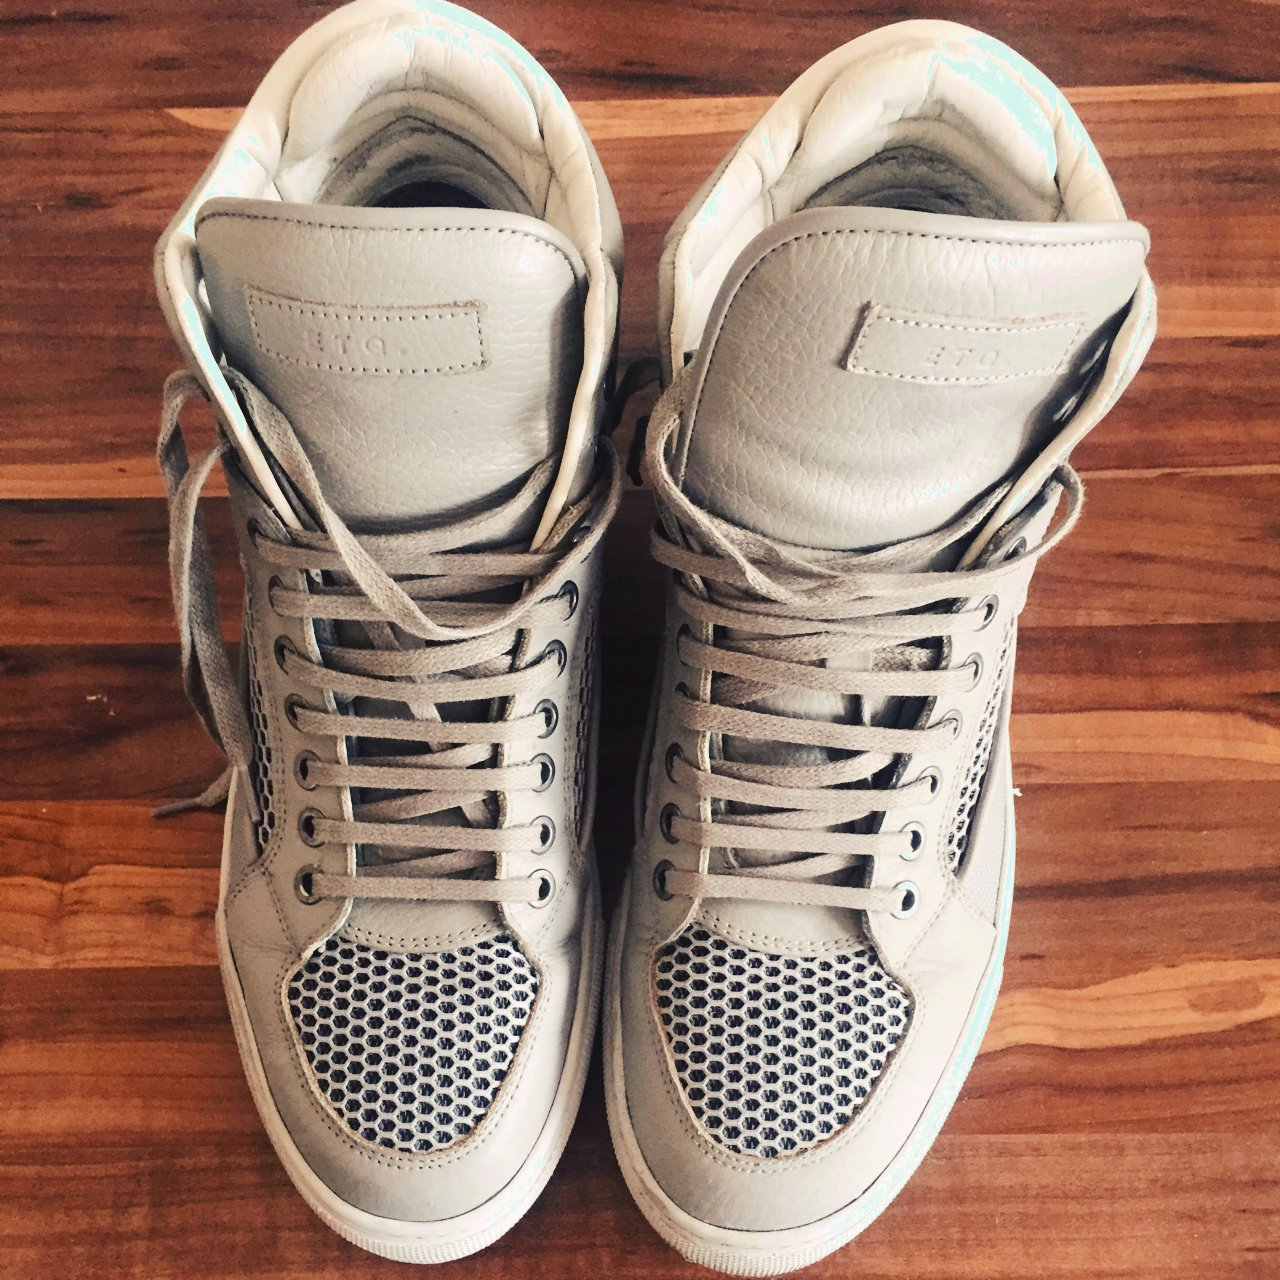 ETQ High Top trainers UK - 9 9d0dc9f6b450